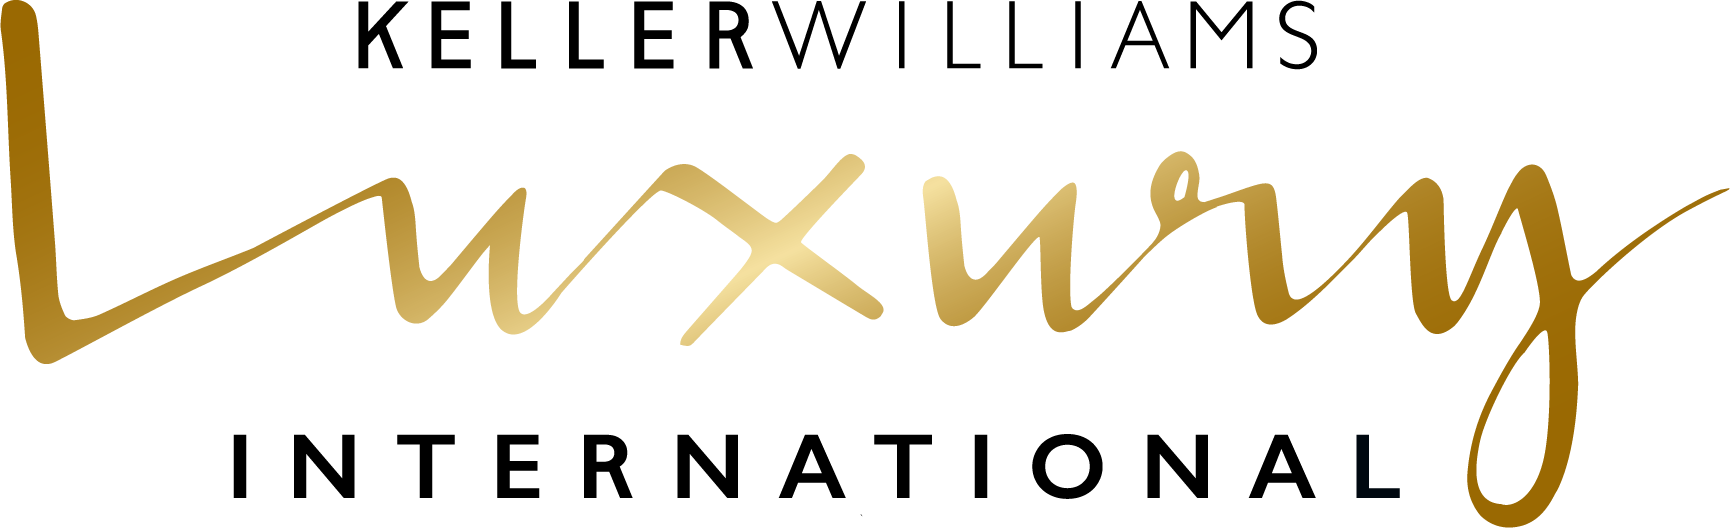 kw luxury international.png